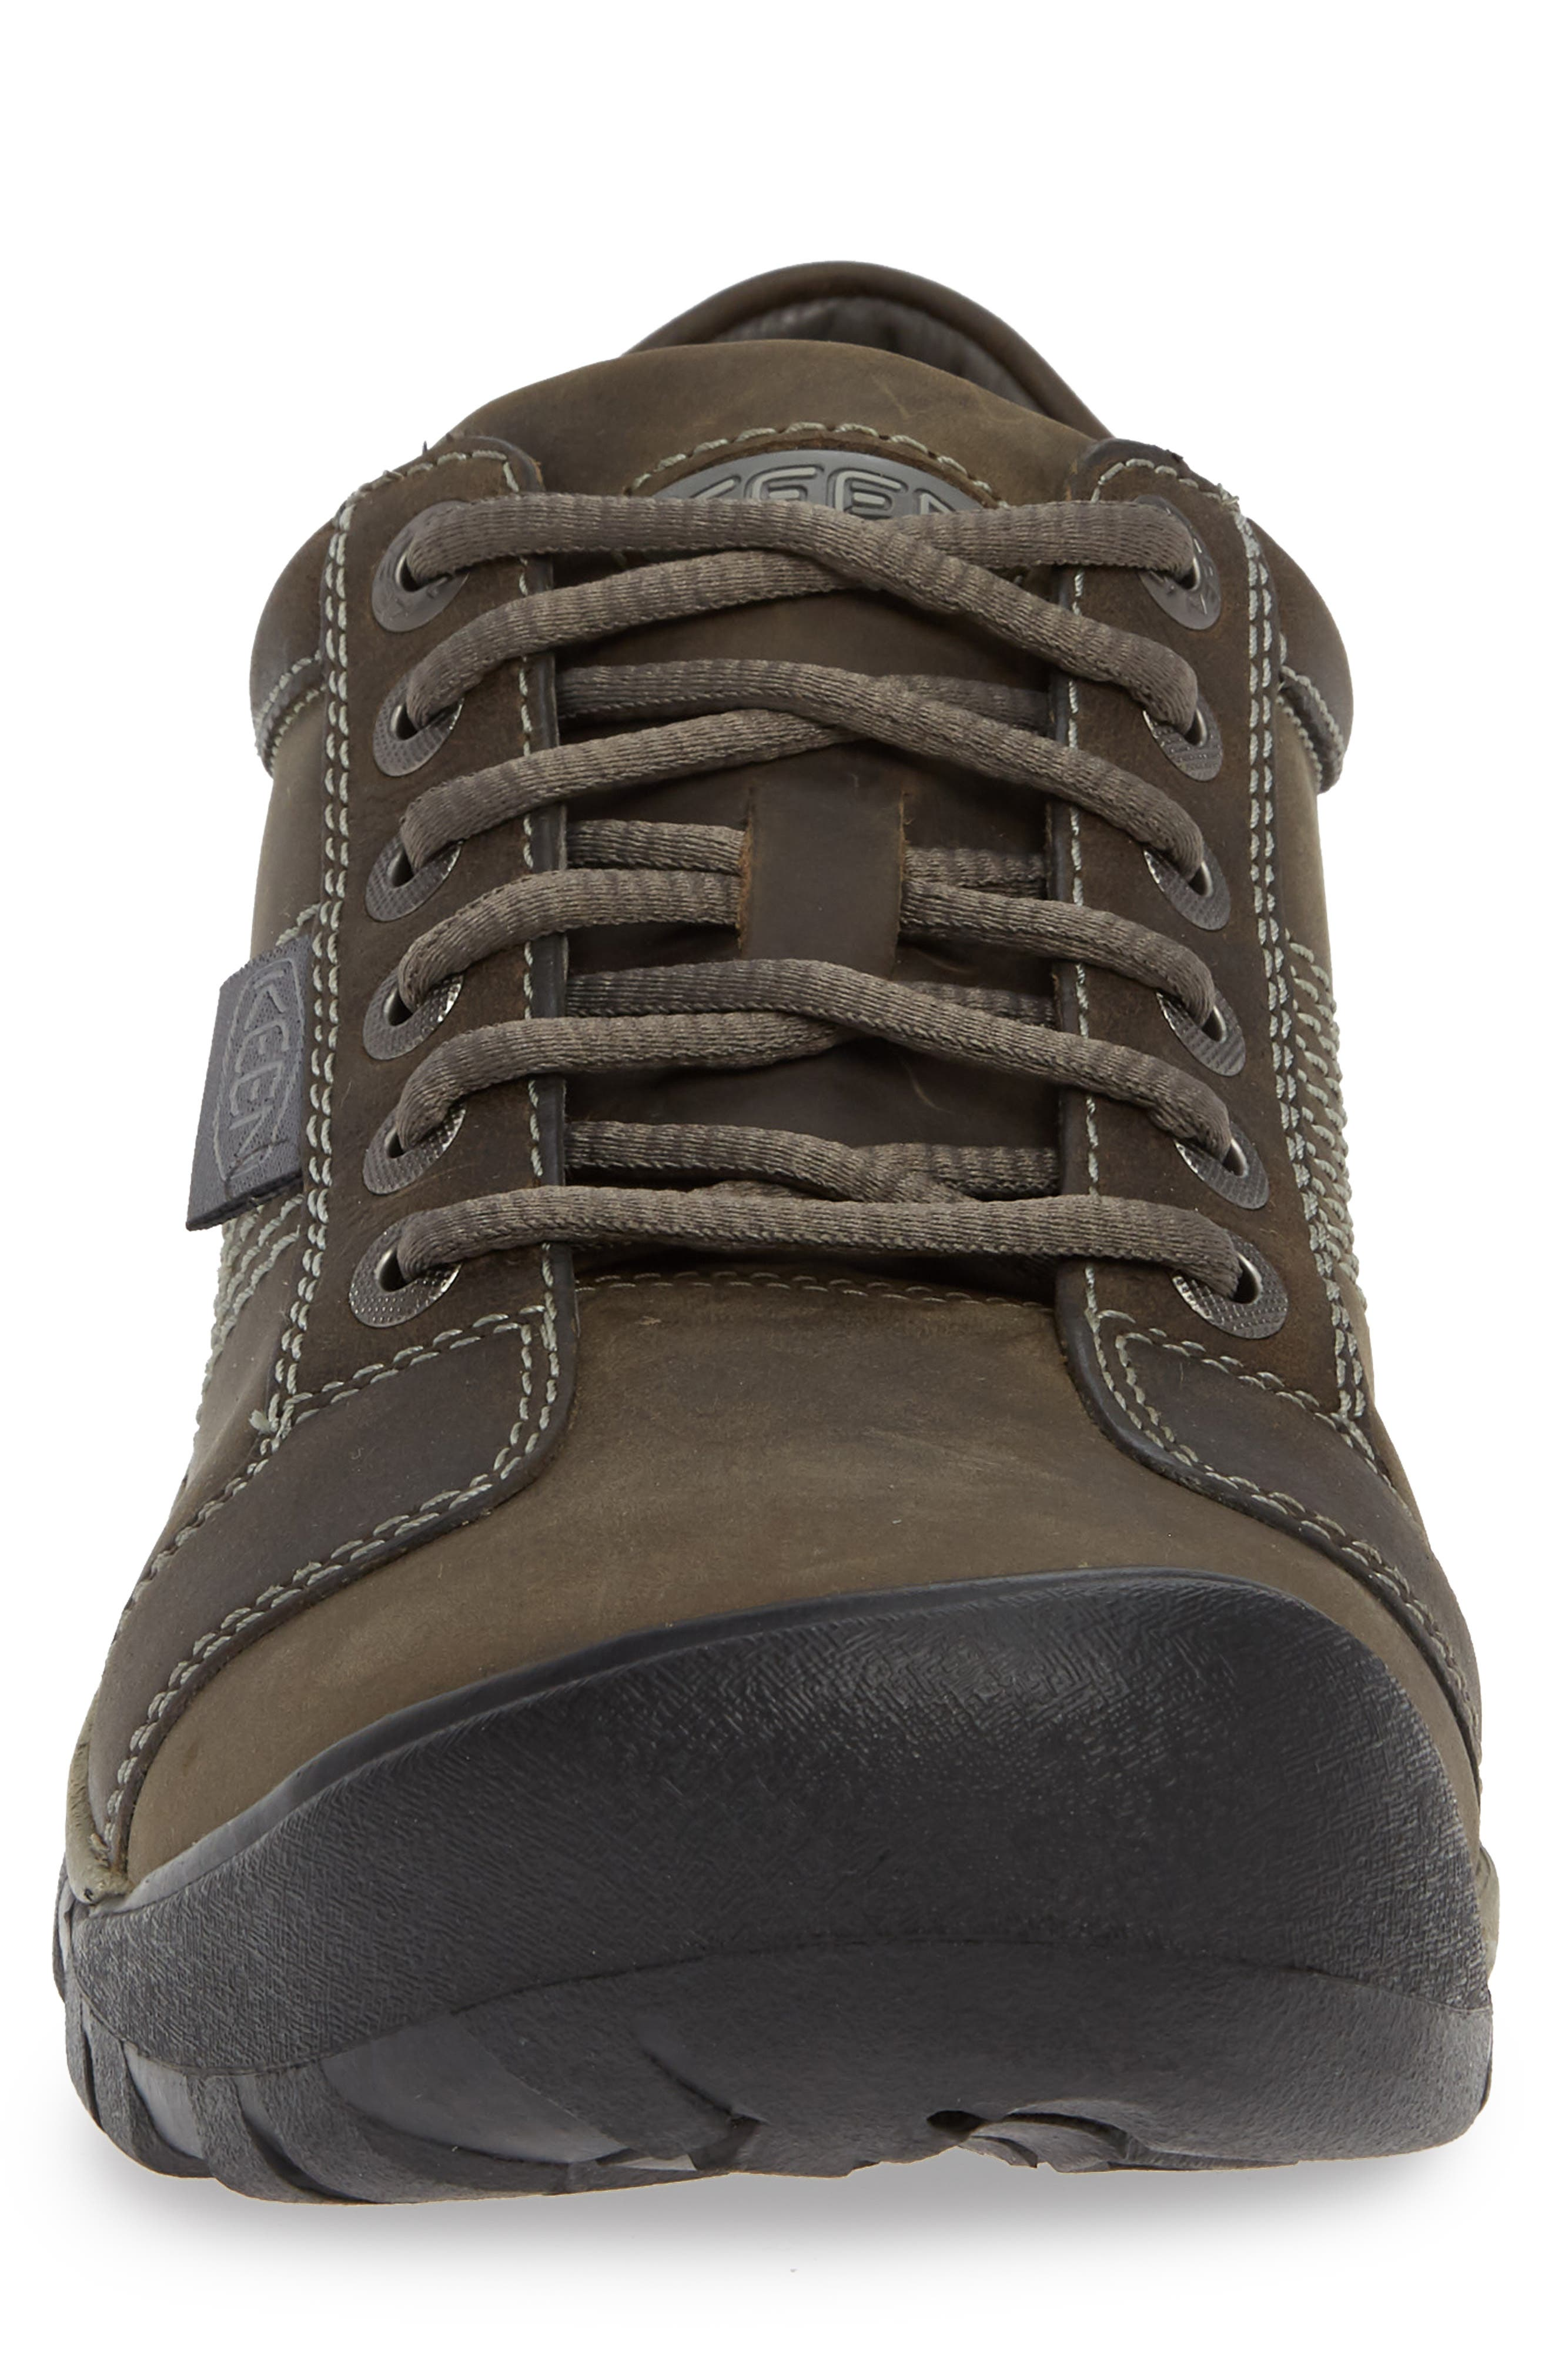 'Austin' Sneaker,                             Alternate thumbnail 4, color,                             GARGOYLE/ NEUTRAL GRAY